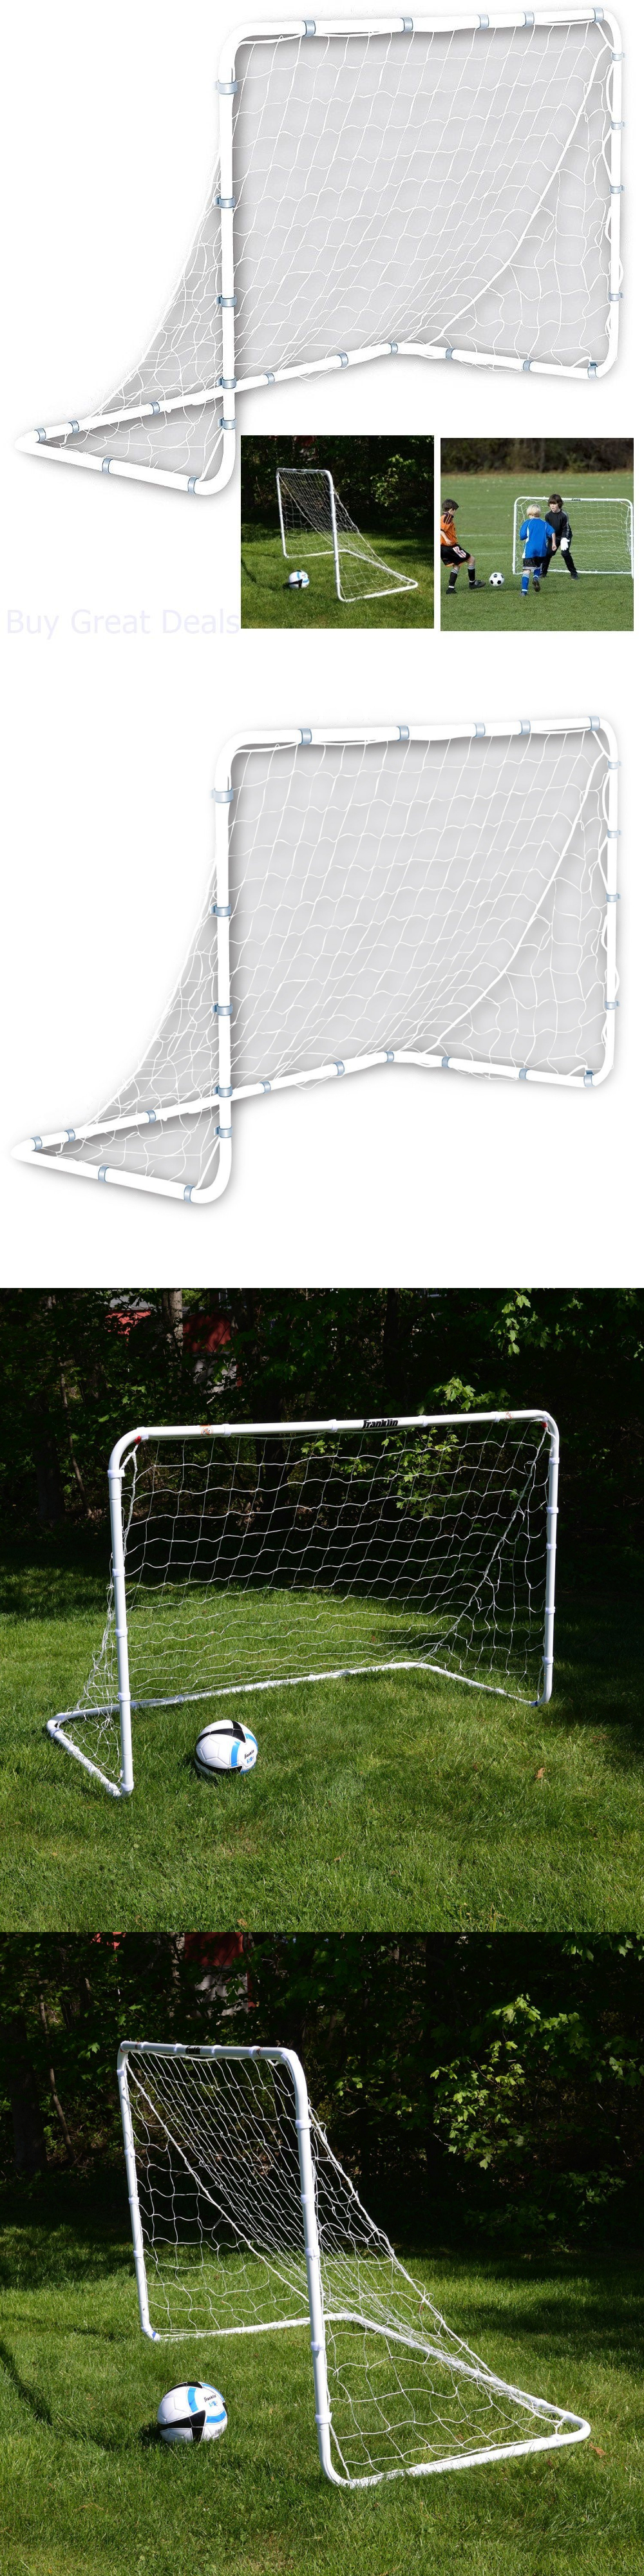 goals and nets 159180 6x4 competition soccer goal franklin sports